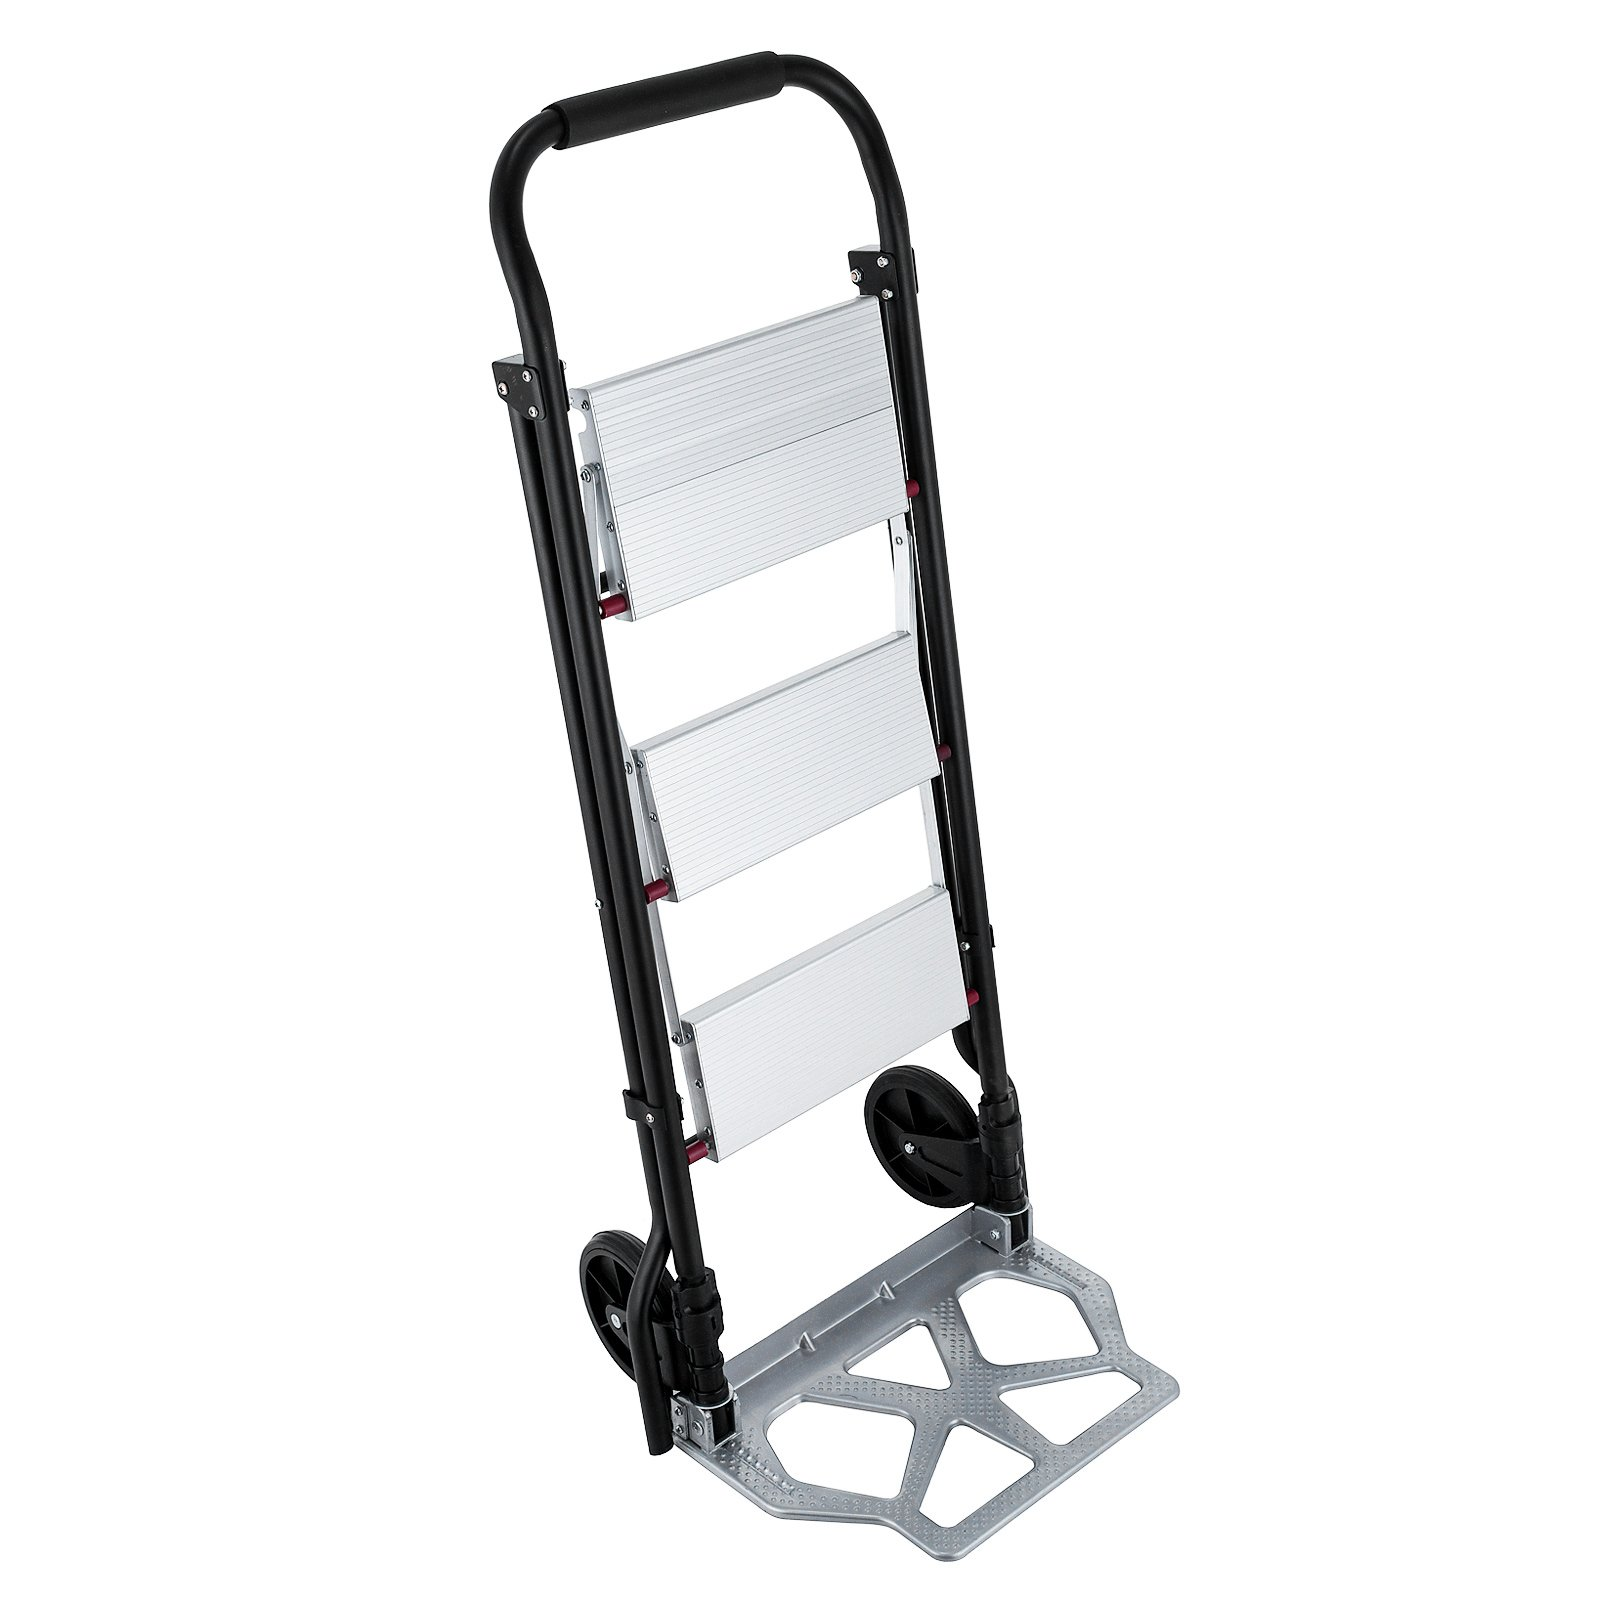 OrangeA 3-Steps Ladder Cart 2-in-1 Convertible Step Ladder Folding Hand Truck with Trolley by OrangeA (Image #2)